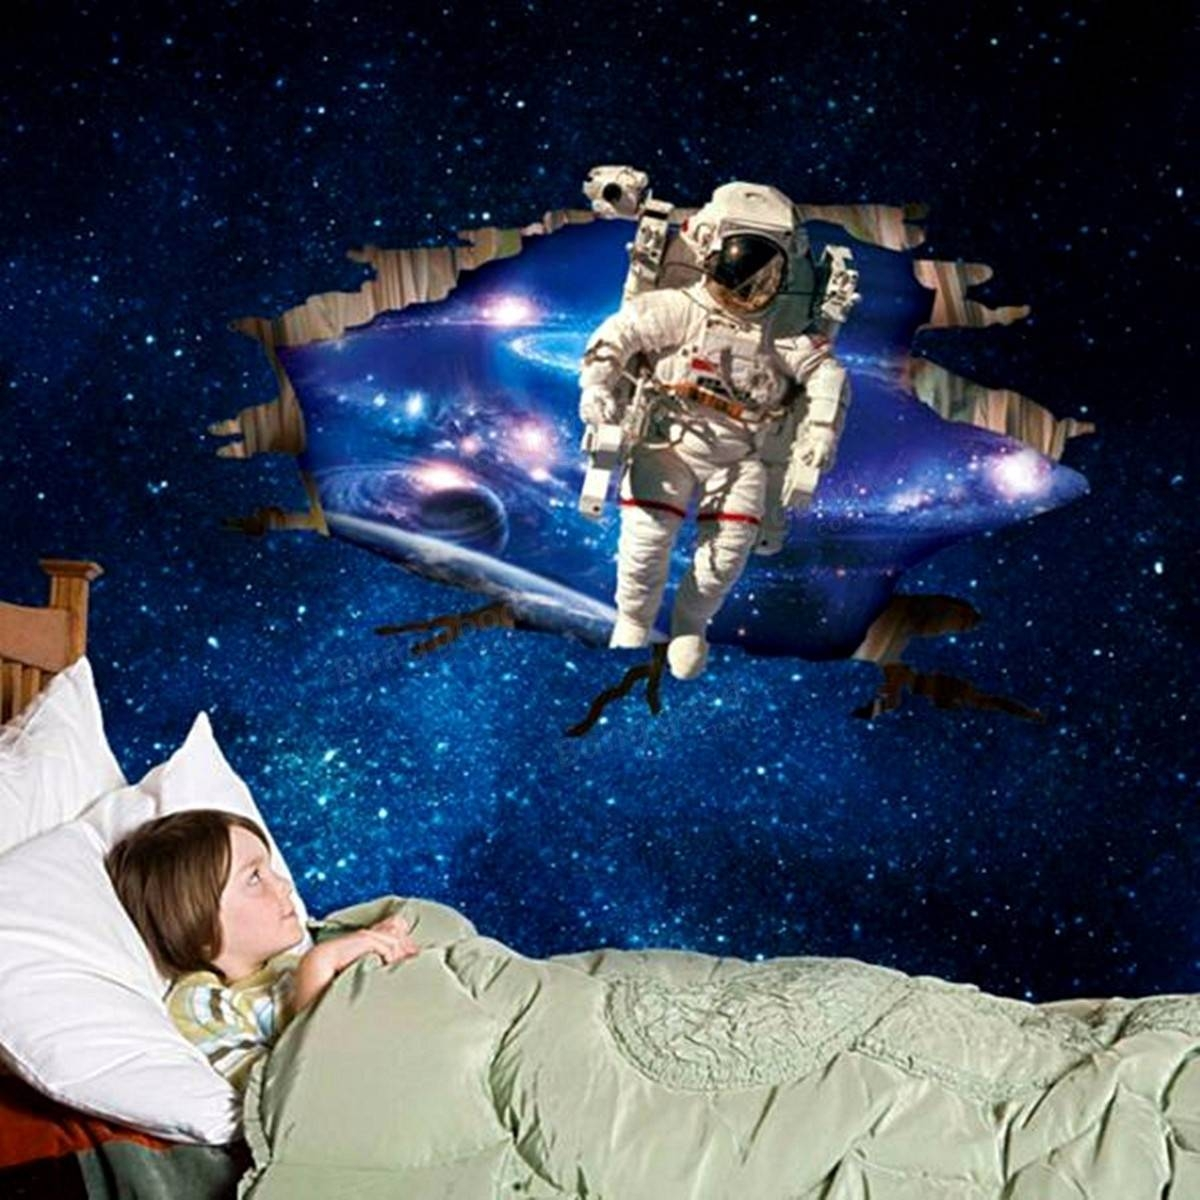 3d Wall Stickers Wallpaper Space Astronauts Decor Kids Room Decal Throughout 2017 Astronaut 3d Wall Art (View 8 of 20)